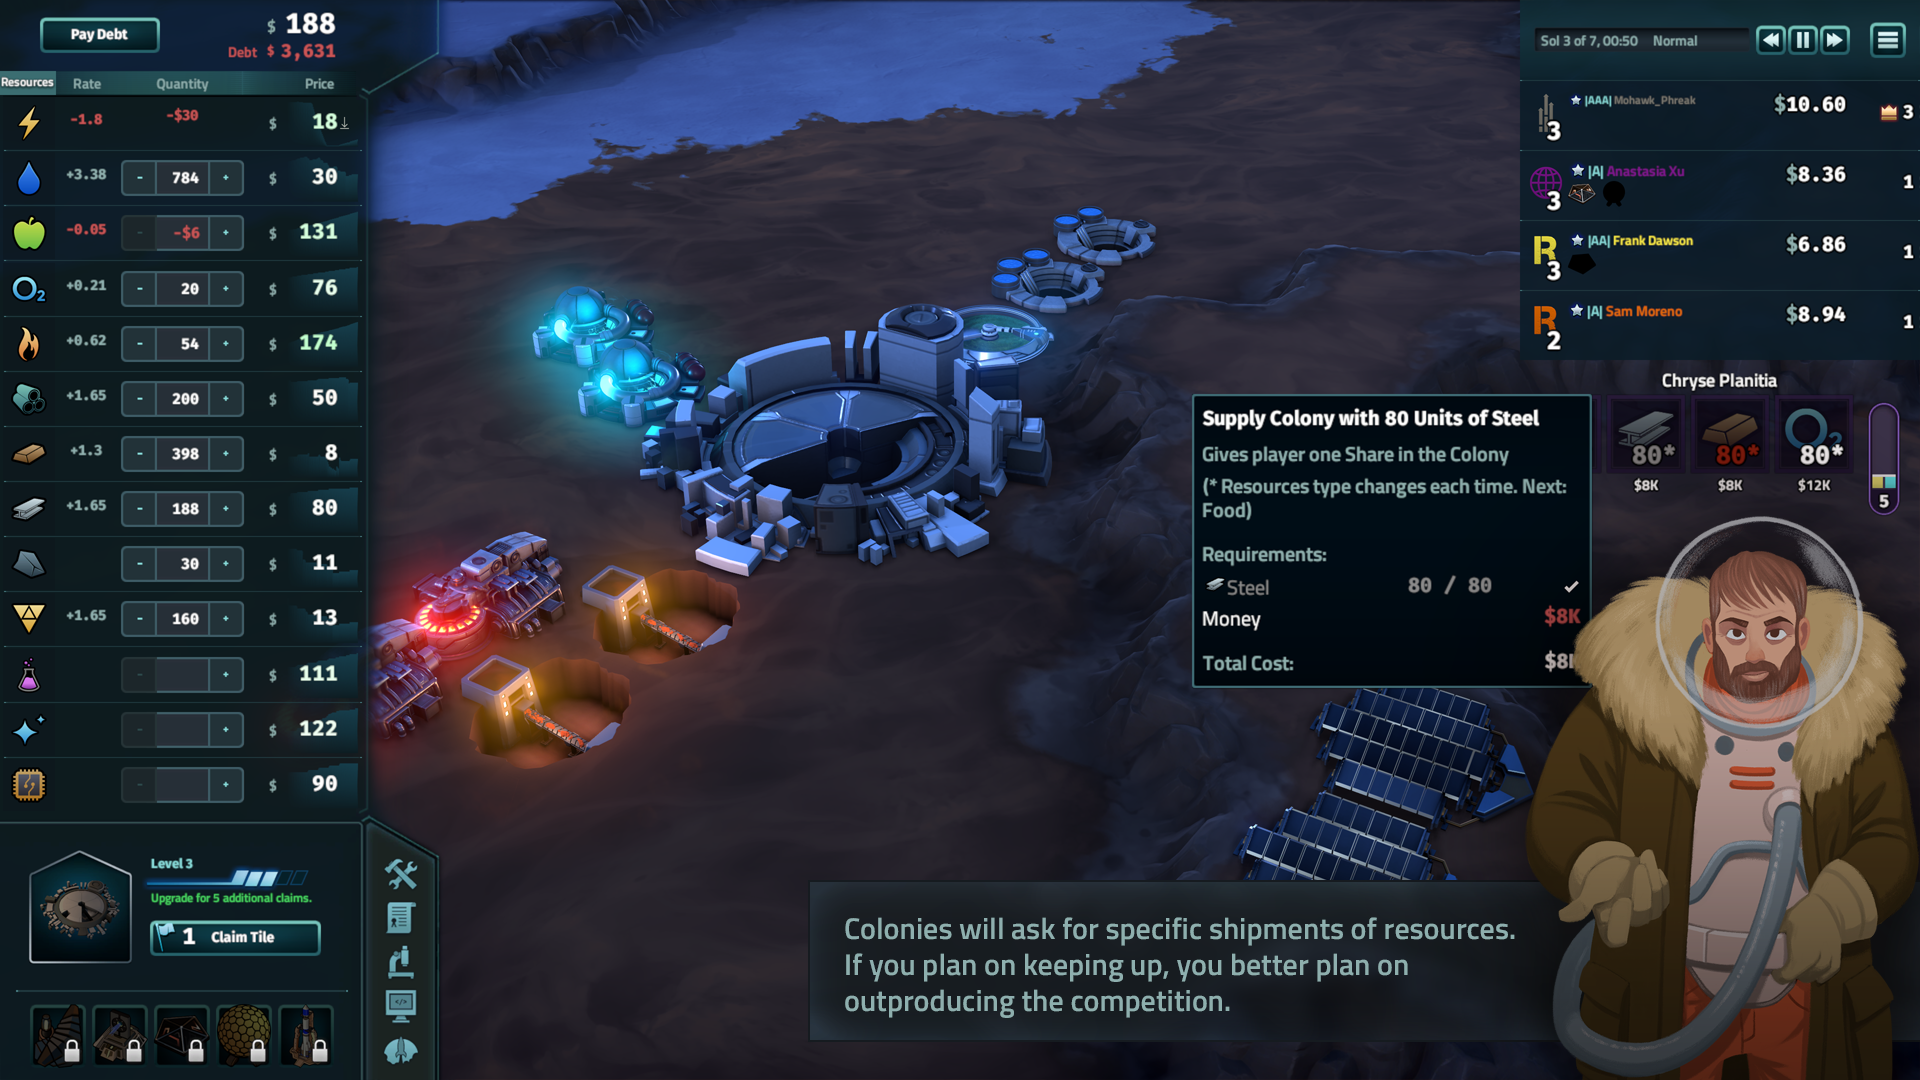 Image result for Offworld Trading Company 1920 x 1080